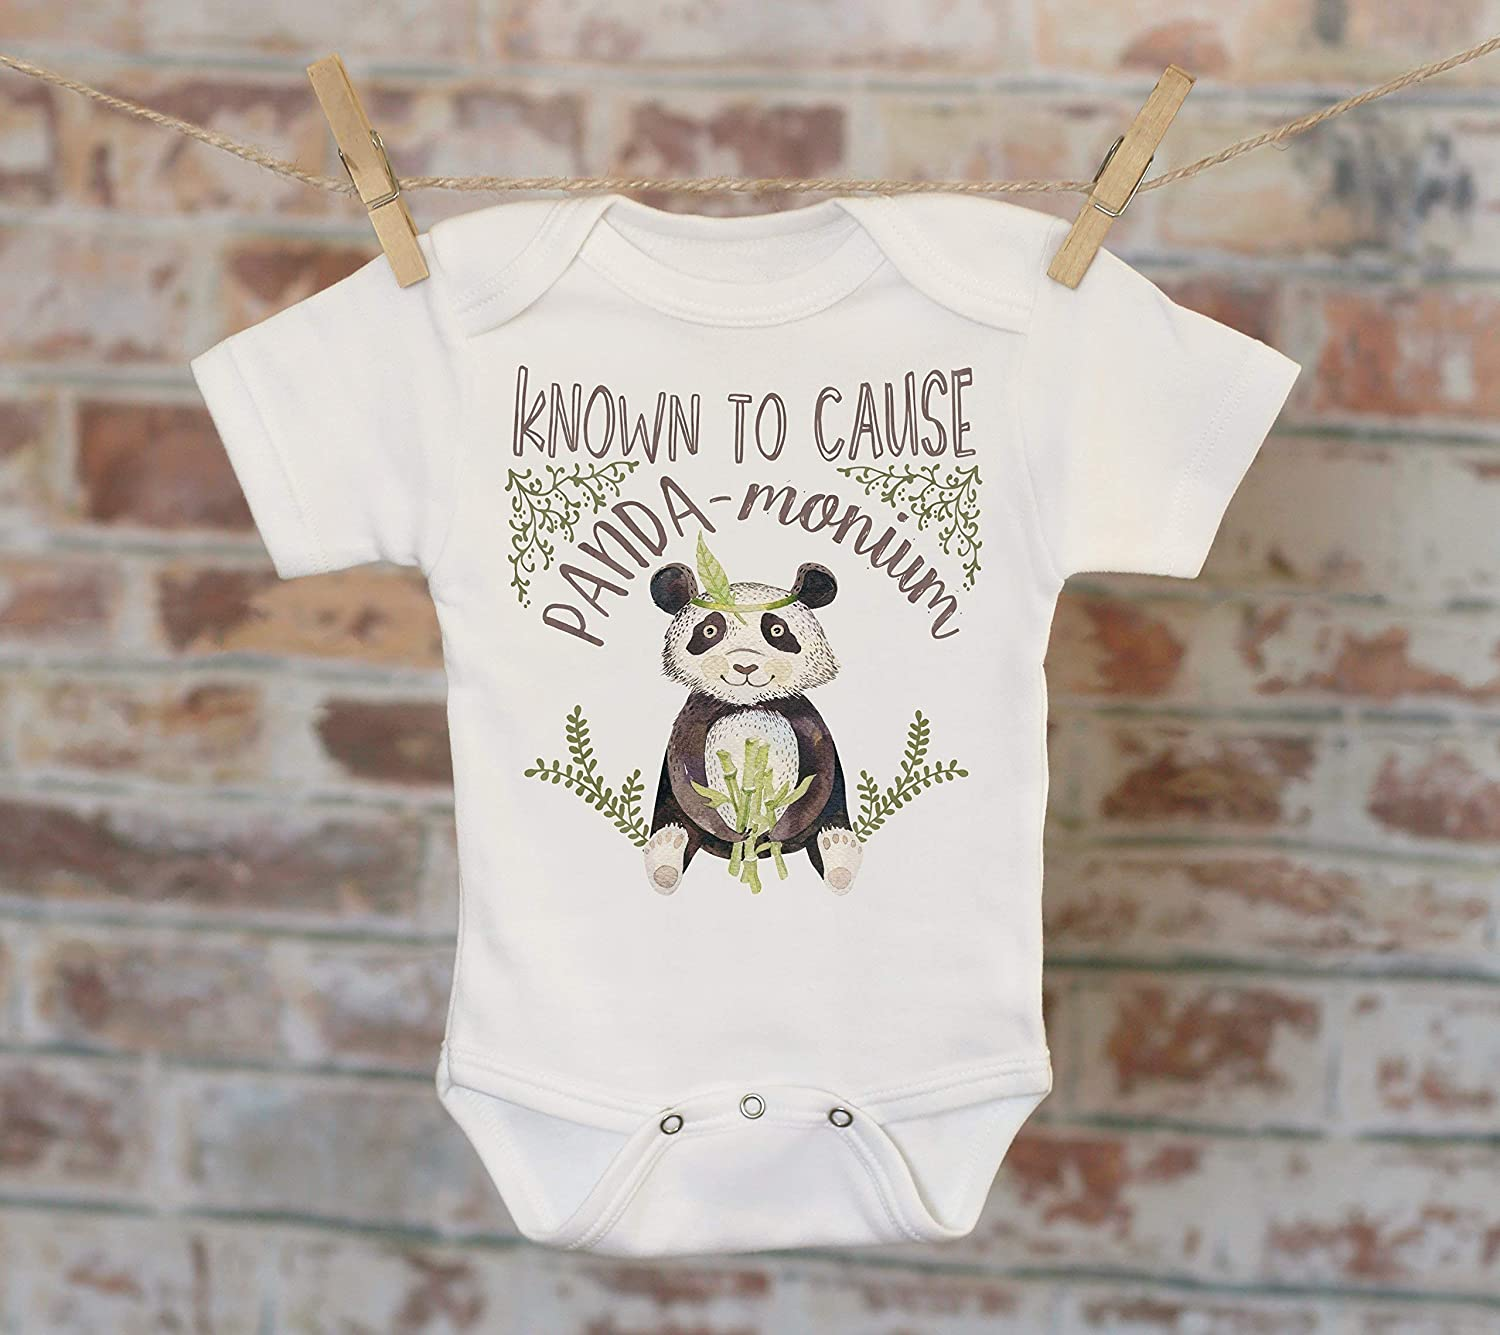 Known To Cause Panda-Monium Tribal Style Onesie®, Cute Onesie, Funny Onesie, Animal Onesie, Cute Baby Bodysuit, Boho Baby Onesie